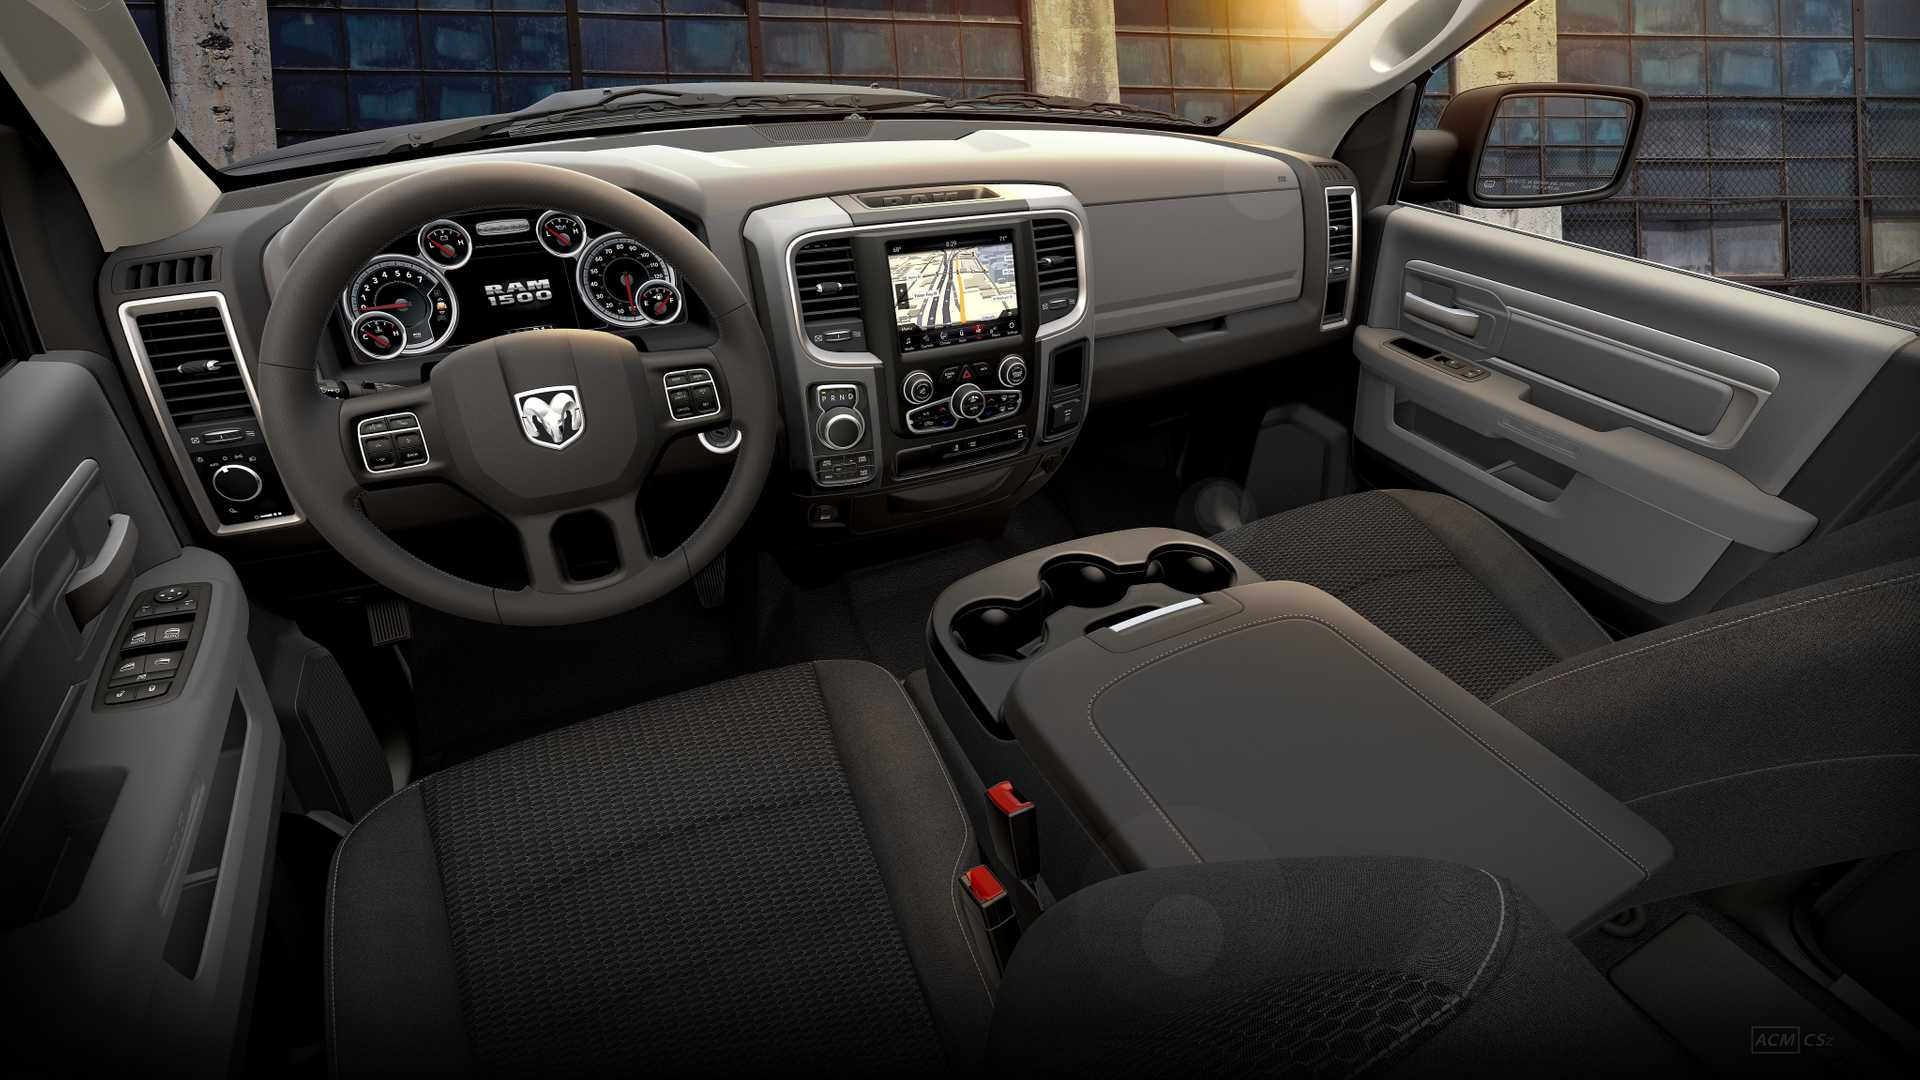 2019 Ram 1500 Classic Warlock Interior Cockpit Wallpapers (12)